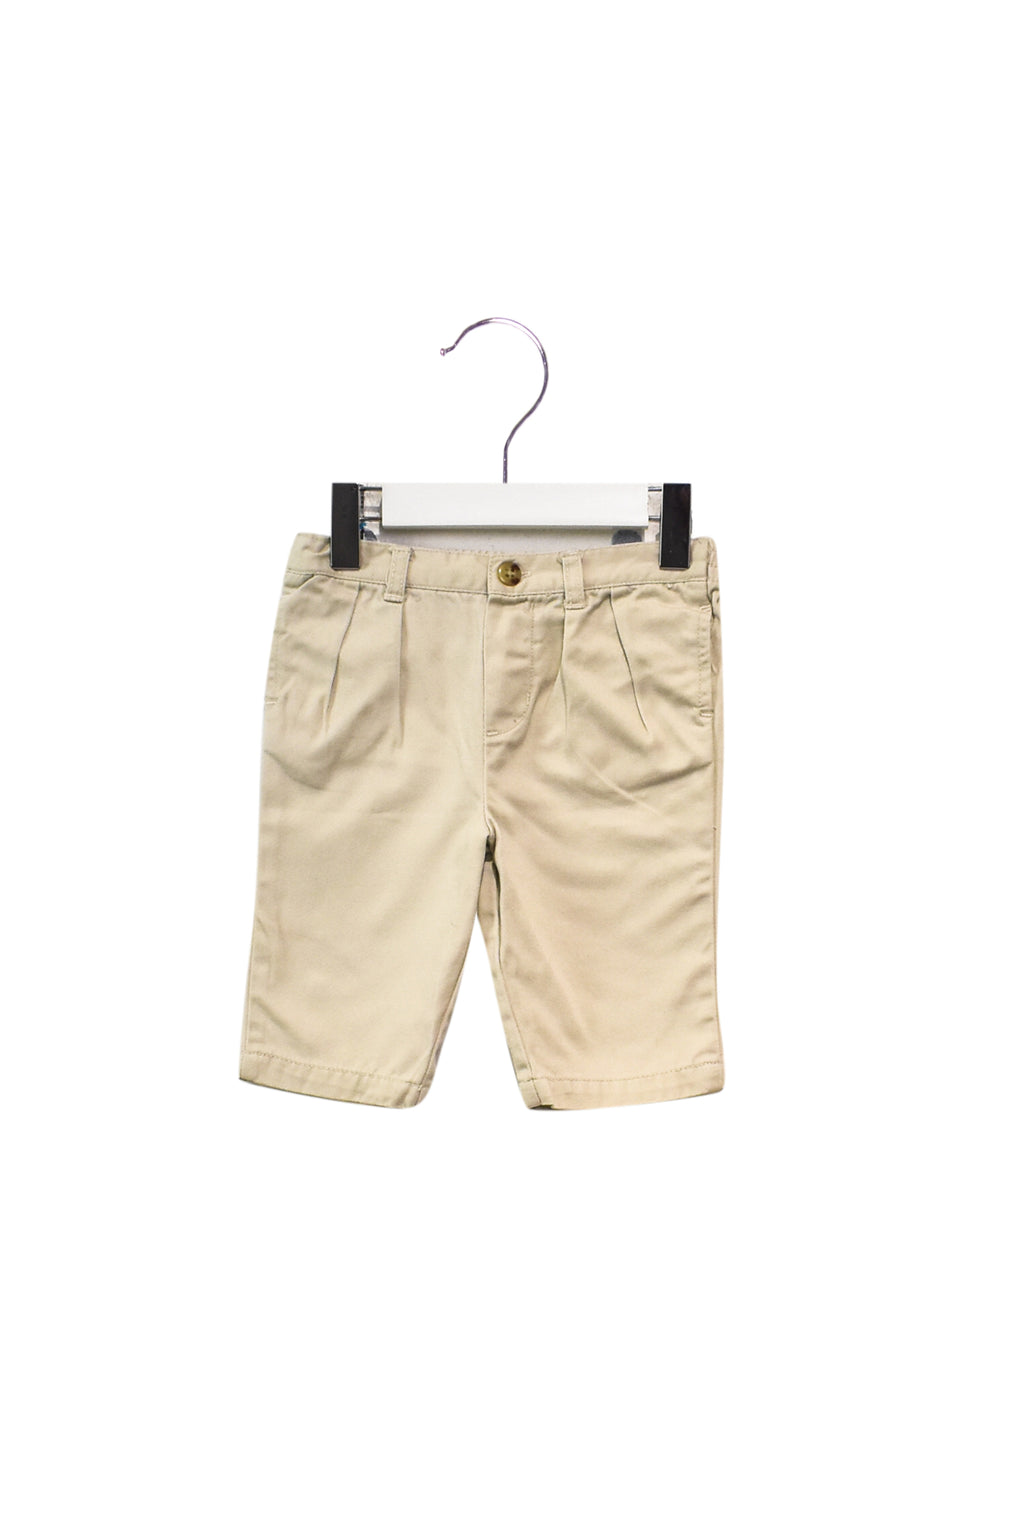 10028143 Ralph Lauren Baby~Shorts 6M at Retykle